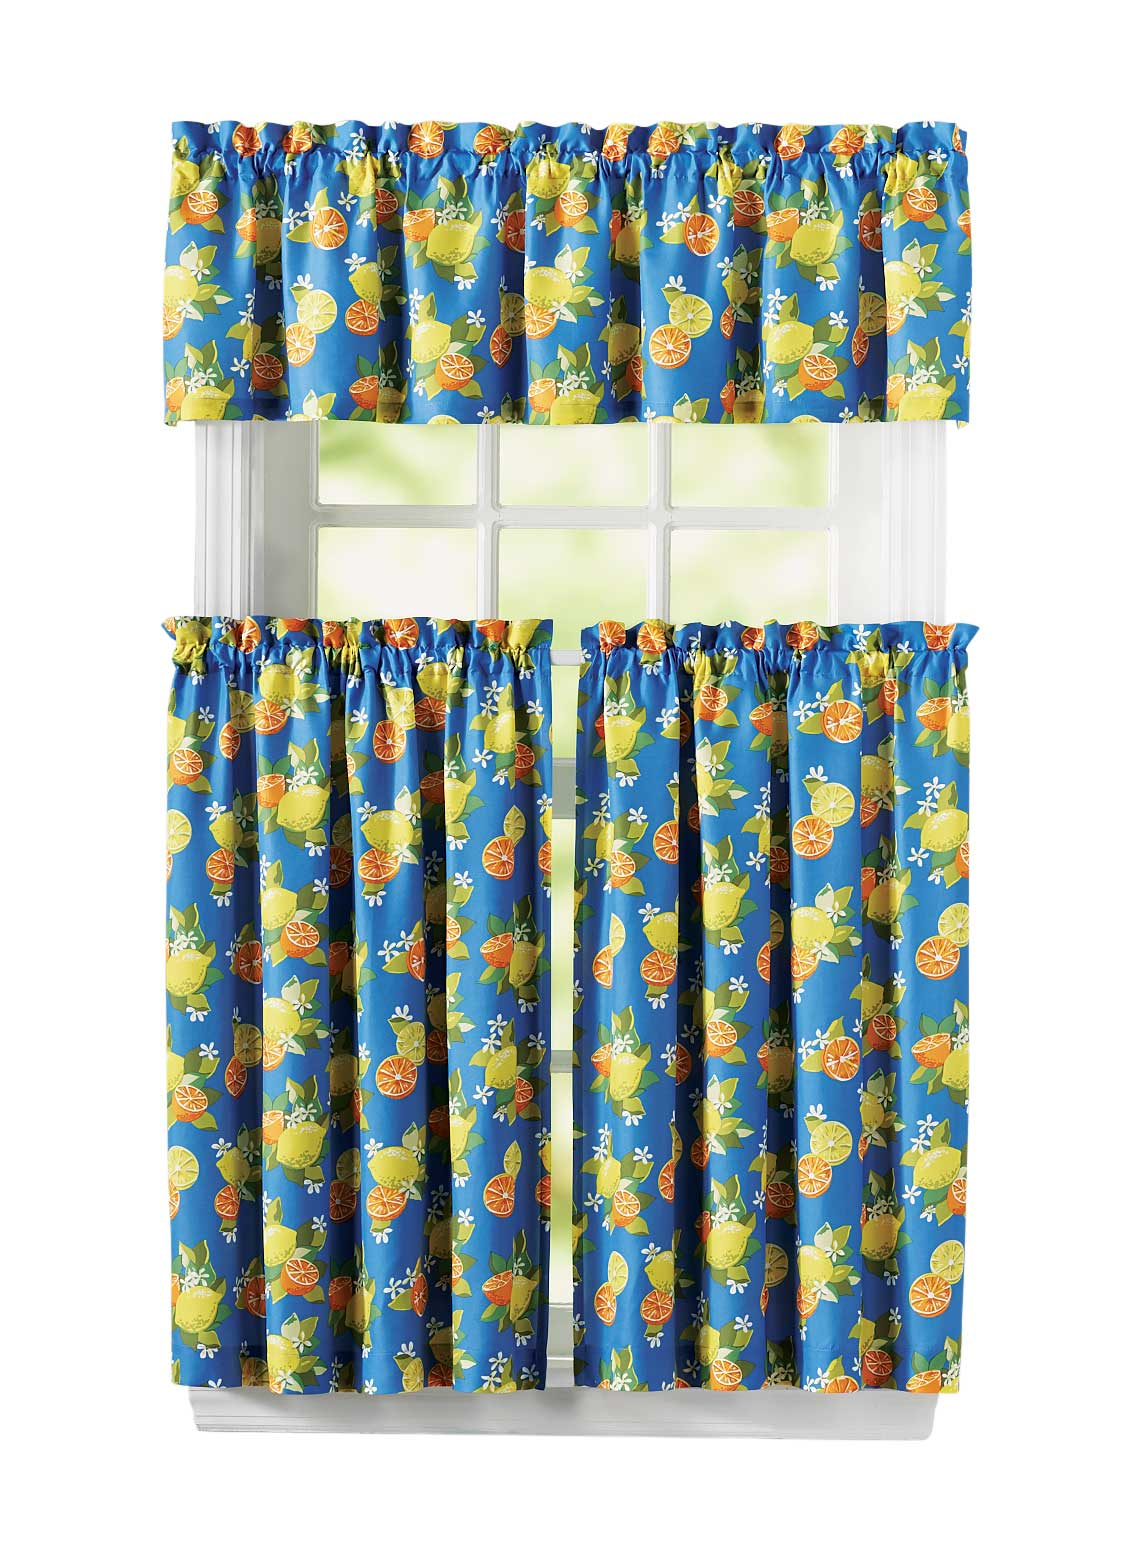 Kitchen Curtain and Valance Set | CarolWrightGifts.com